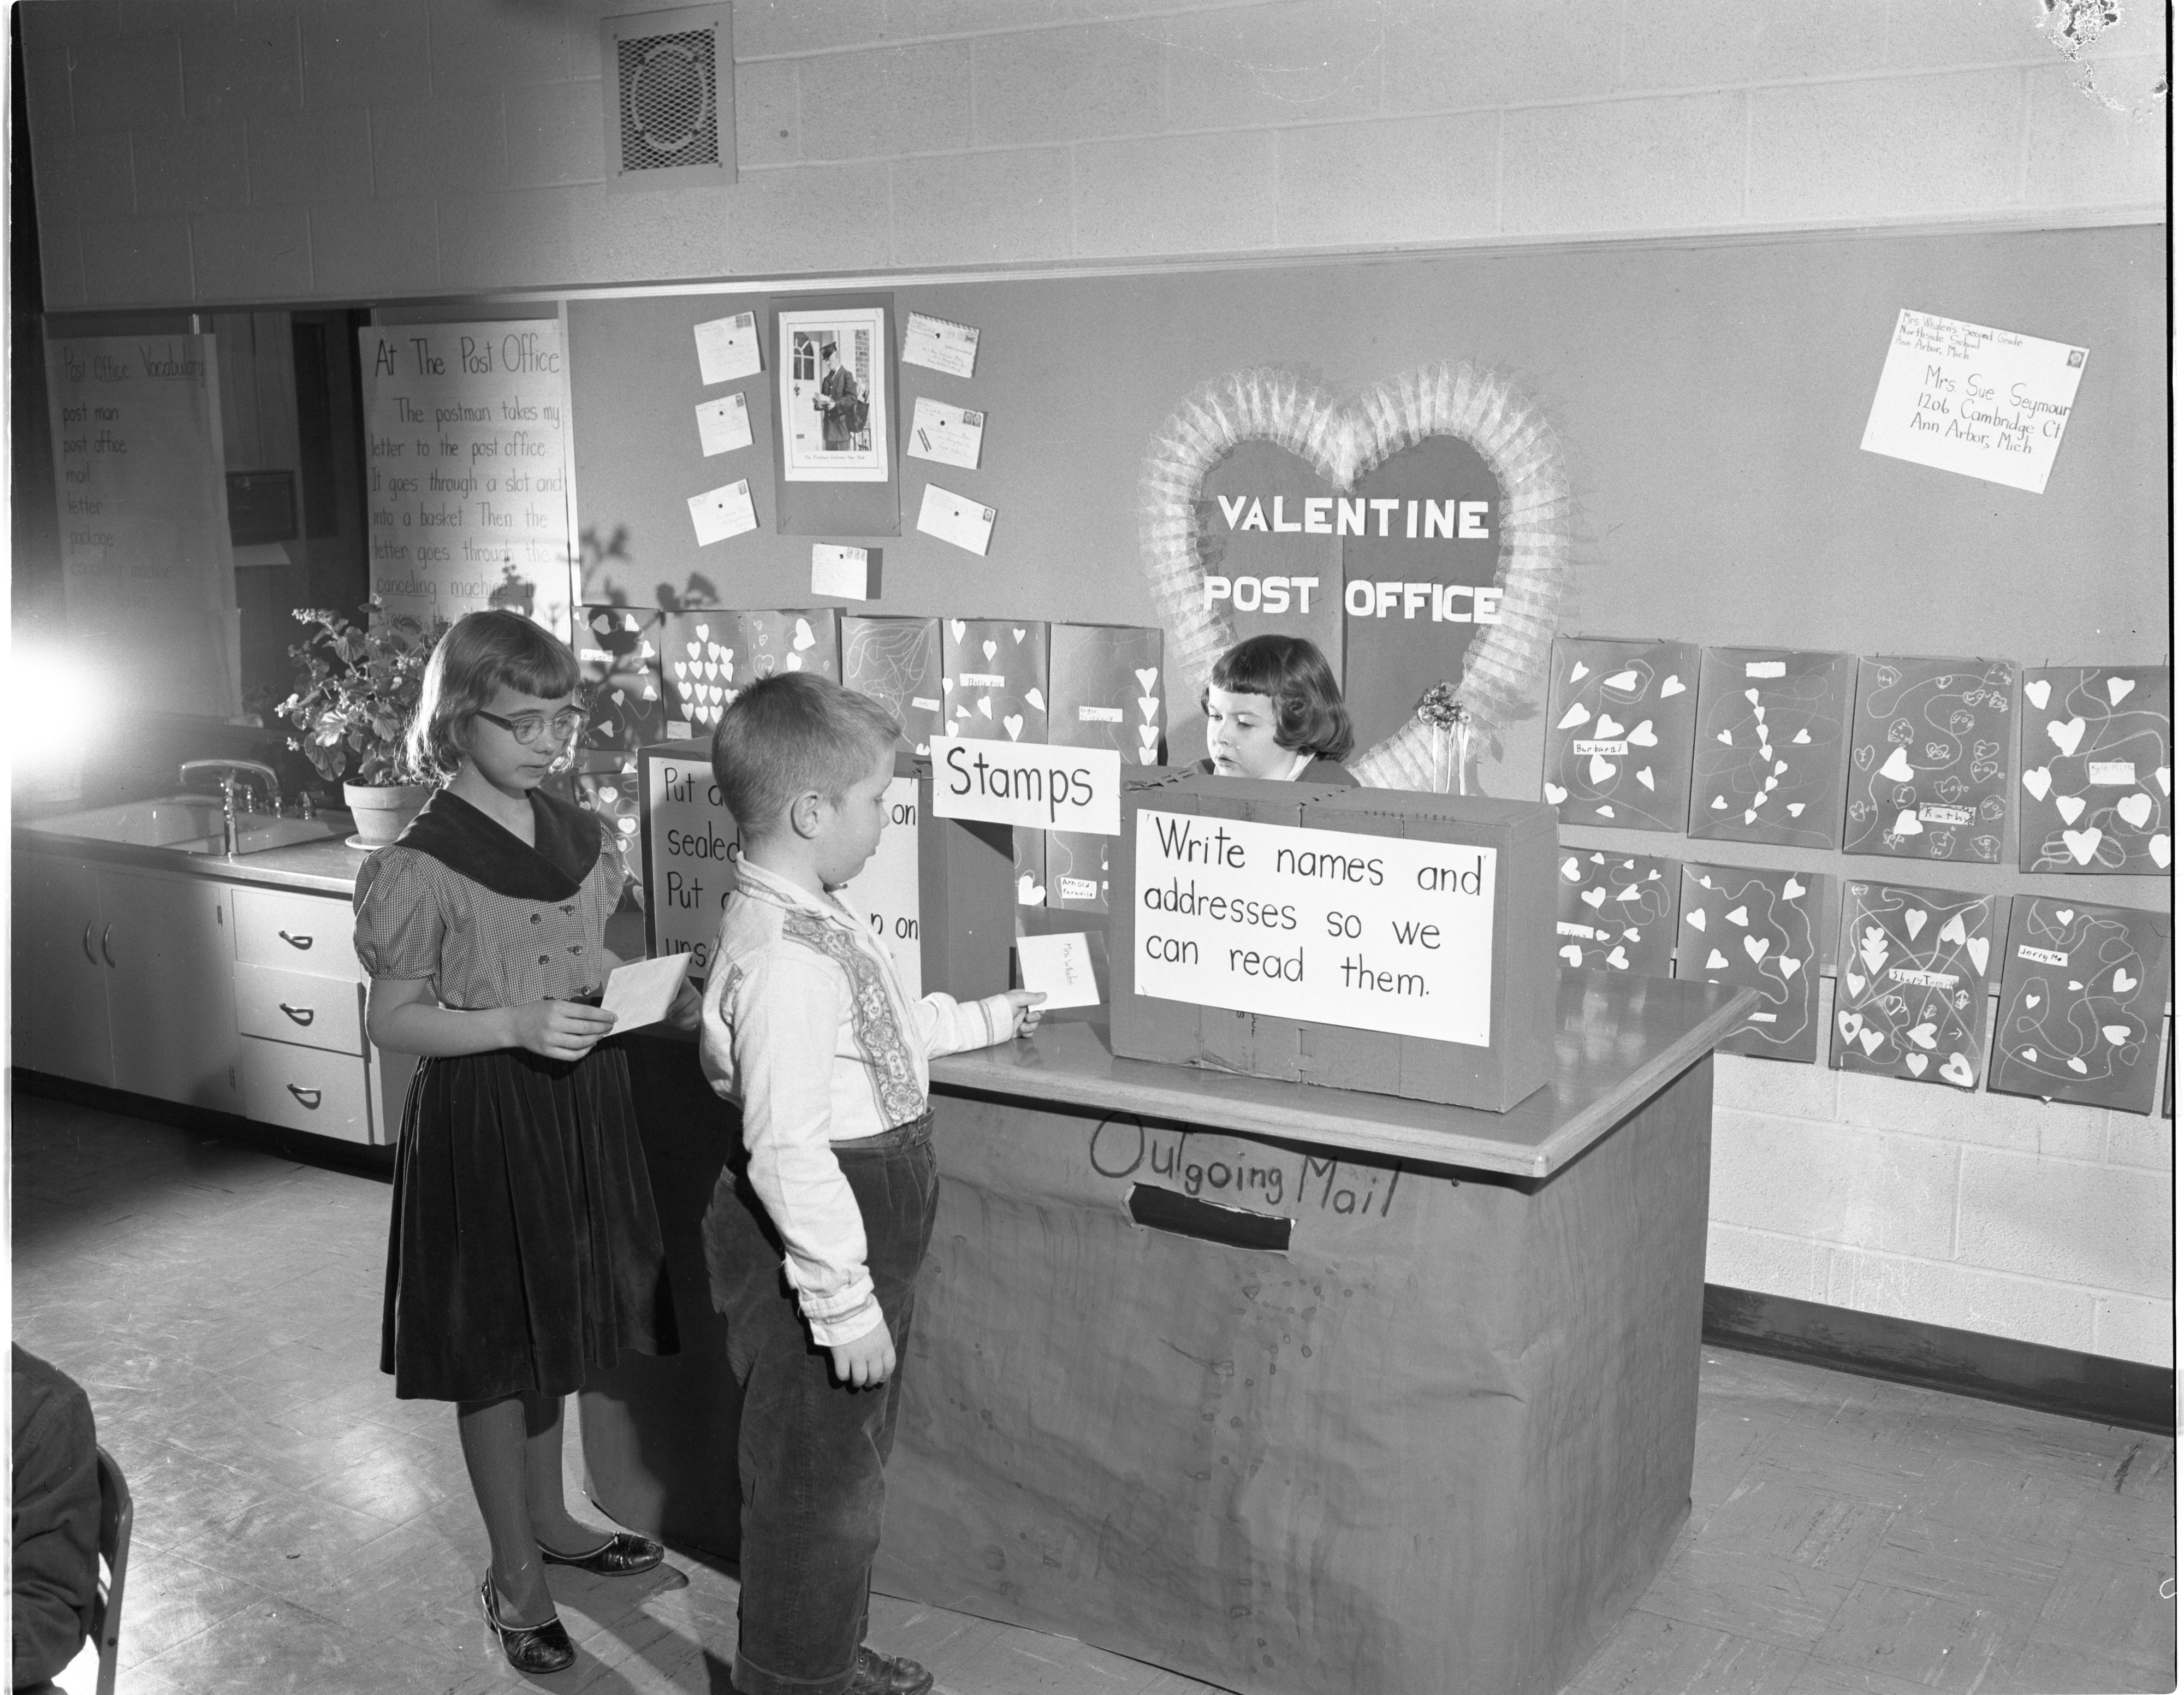 Valentine Post Office At Northside School, February 1957 image